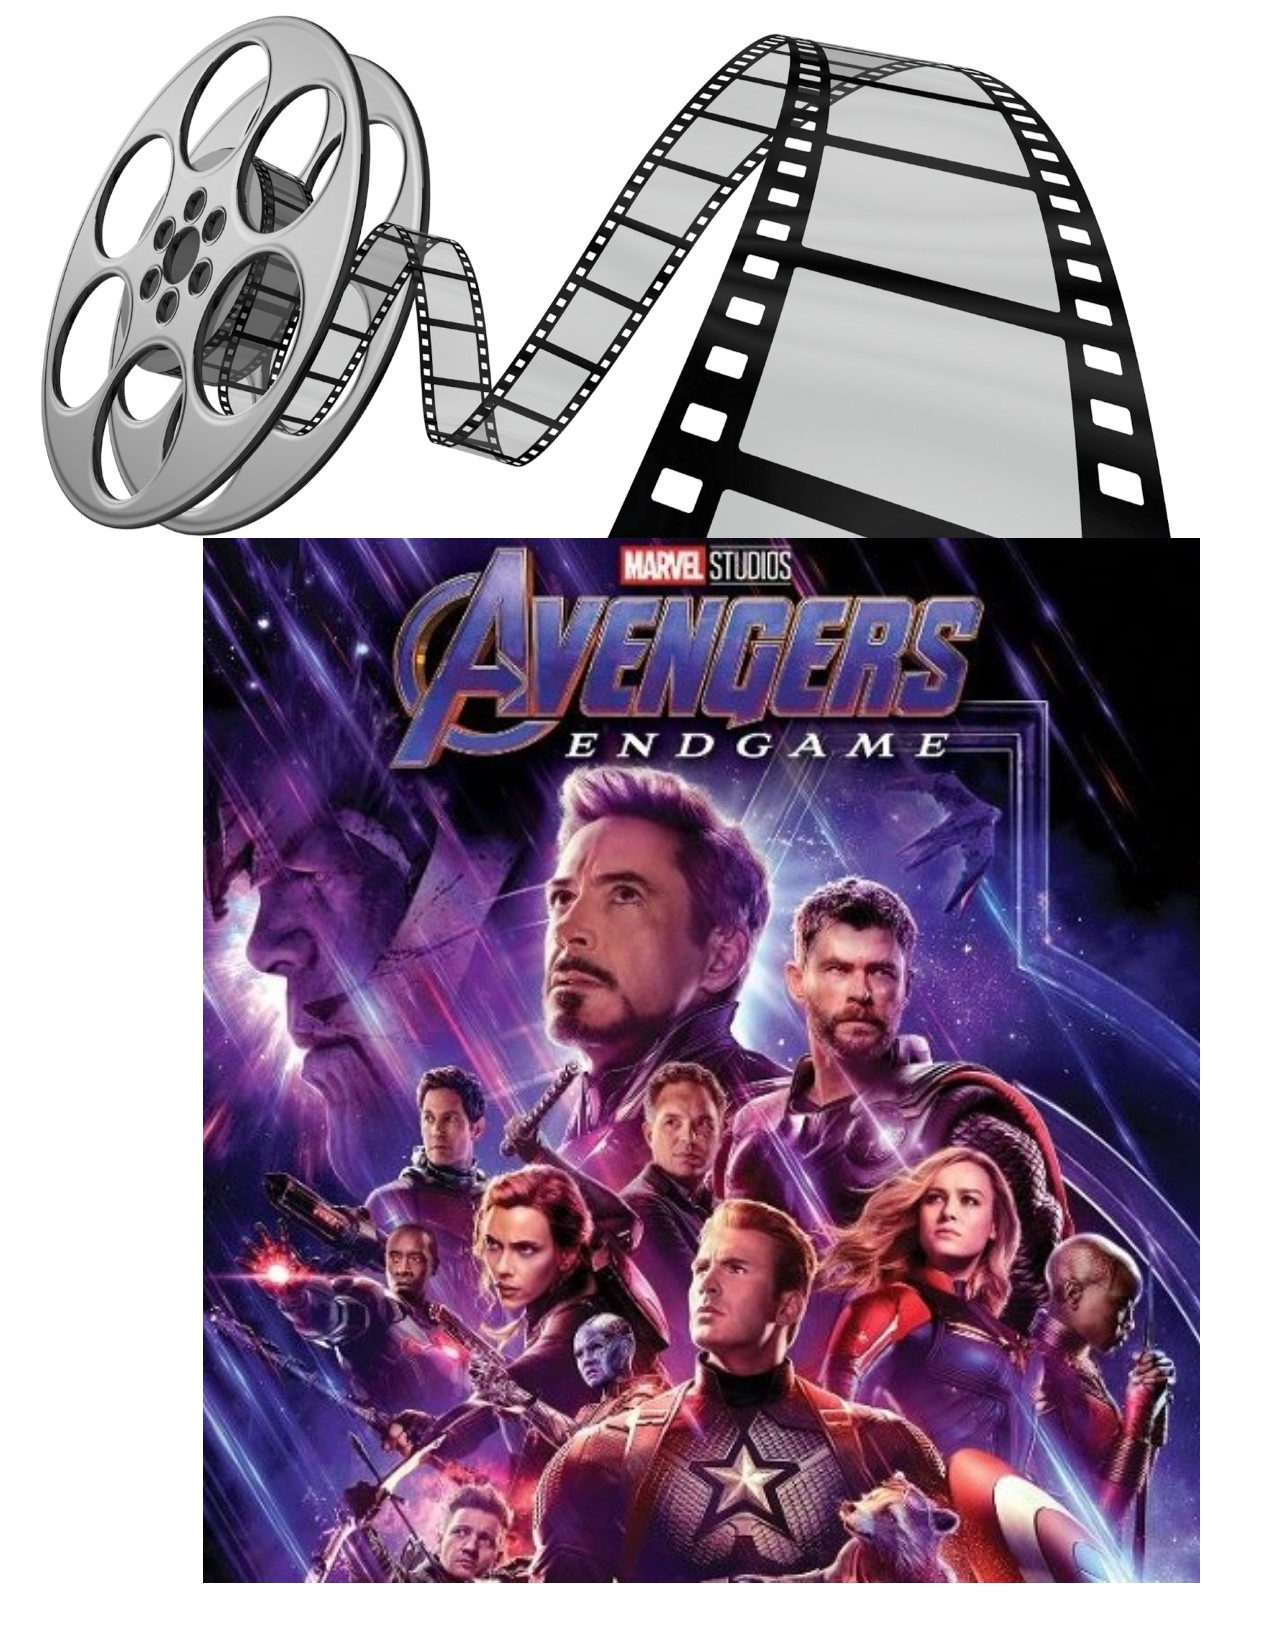 New Movie Thursday: Avengers Endgame (2019)